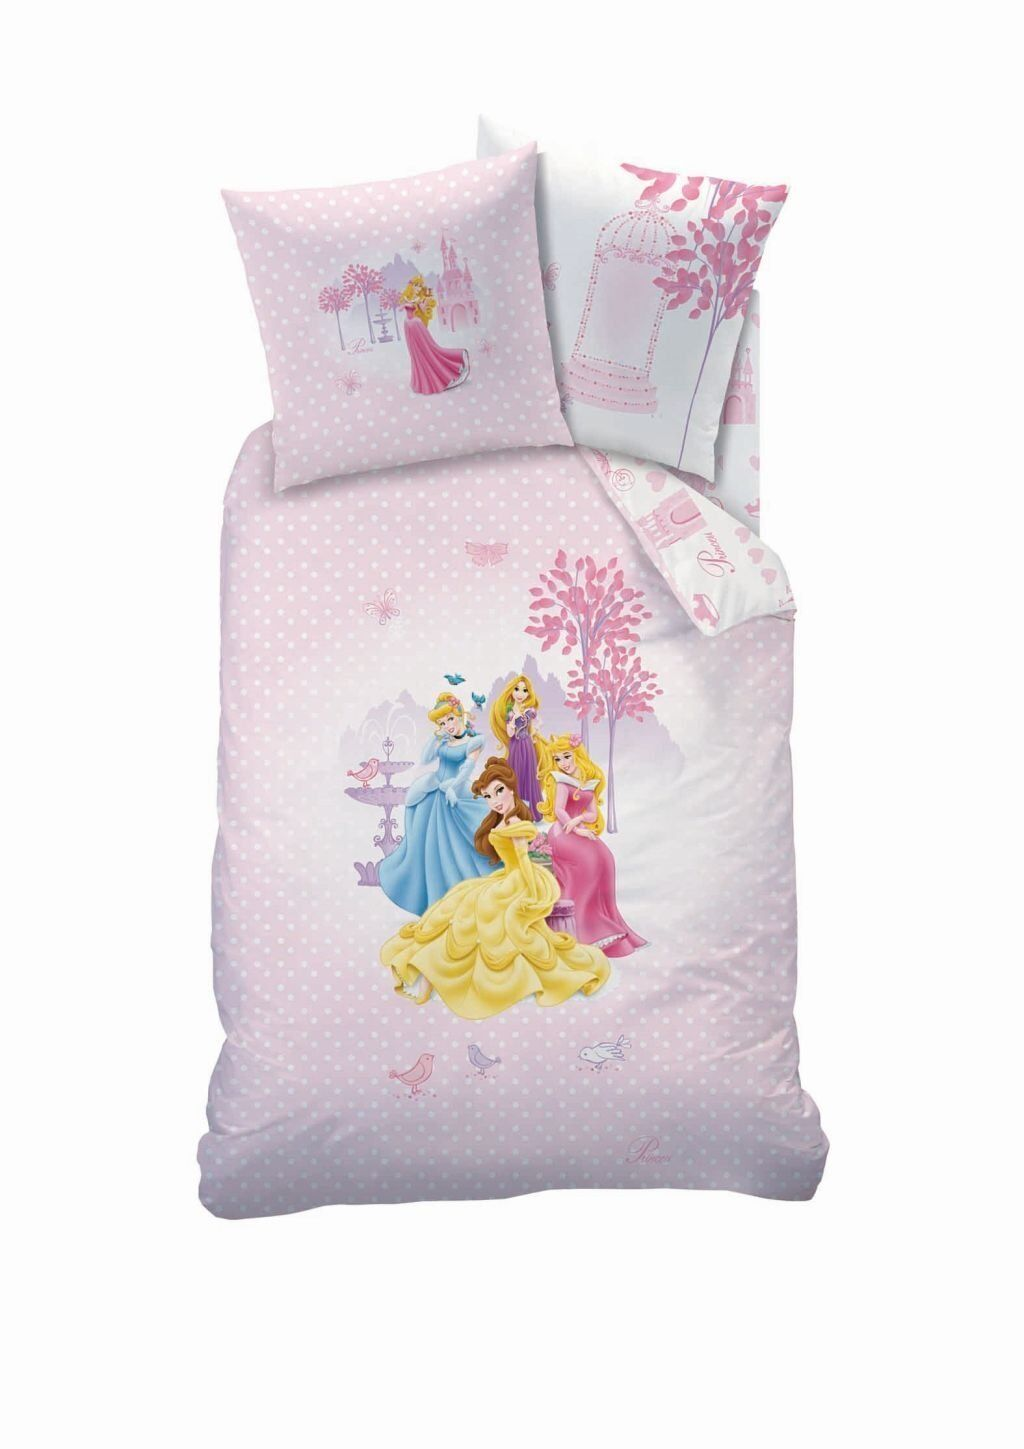 biber kinder bettw sche 135 200 disney princess palace neu ovp baumwolle flanell ebay. Black Bedroom Furniture Sets. Home Design Ideas